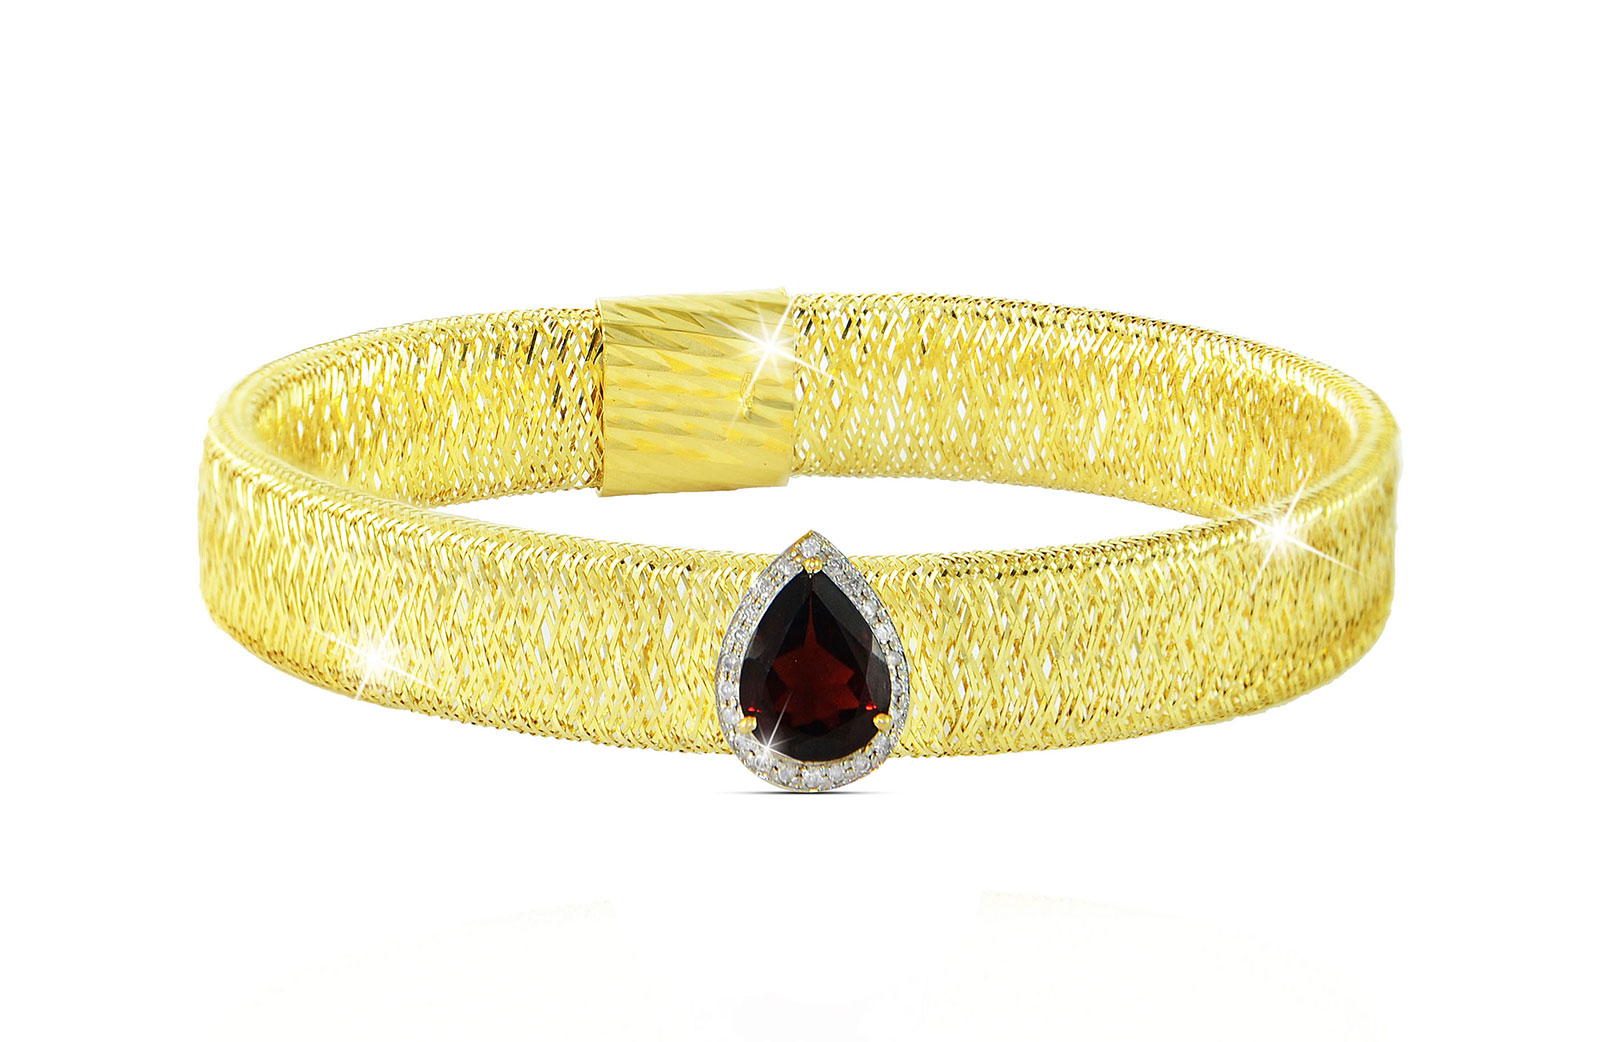 Vera Perla 18K Gold 0.12ct Diamonds, Garnet Mesh Bracelet